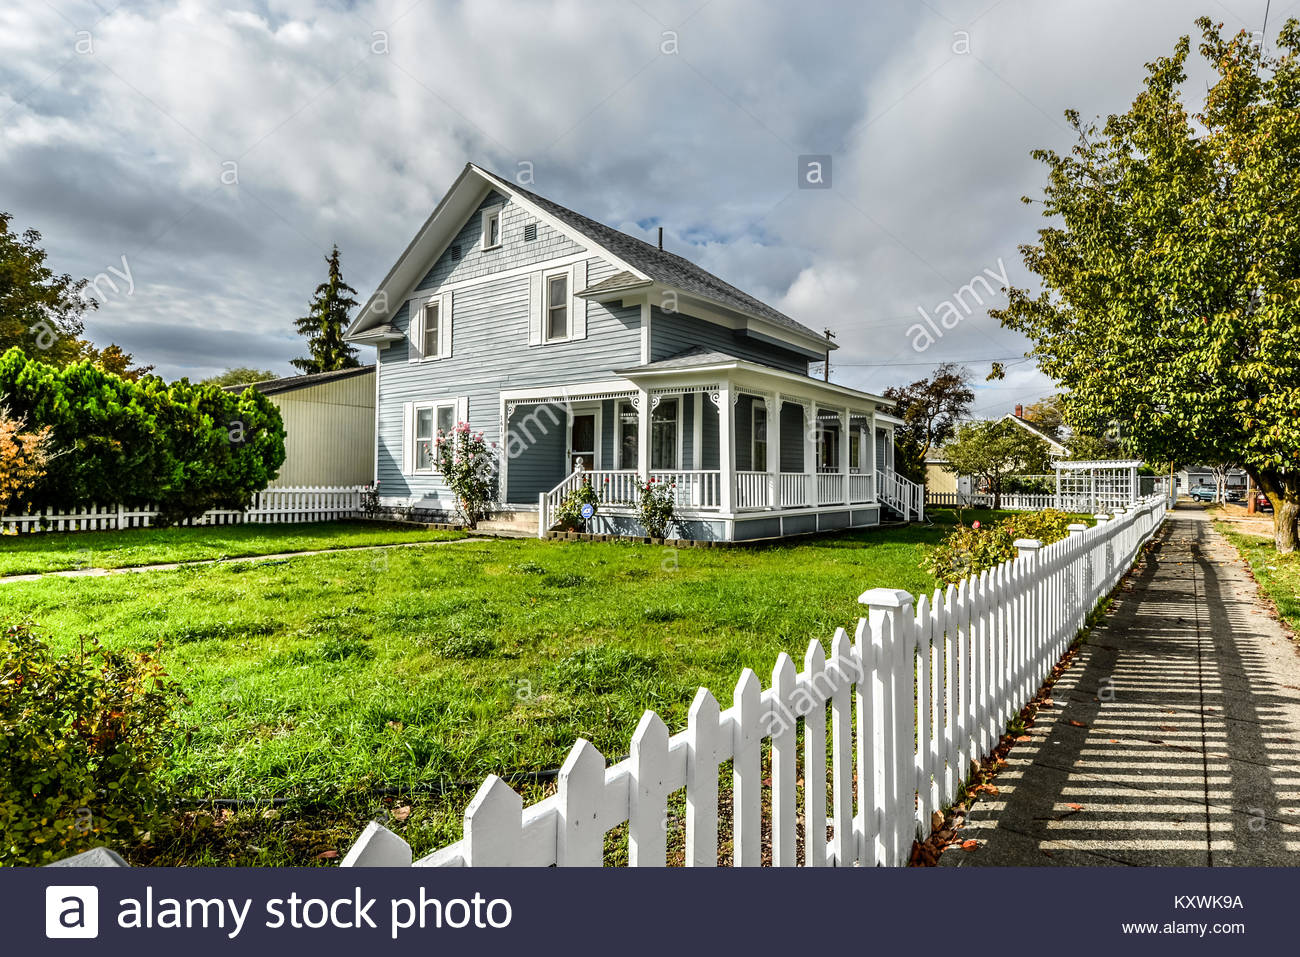 A cute victorian home with a white picket fence and large wraparound porch in the Pacific Northwest area of the - Stock Image